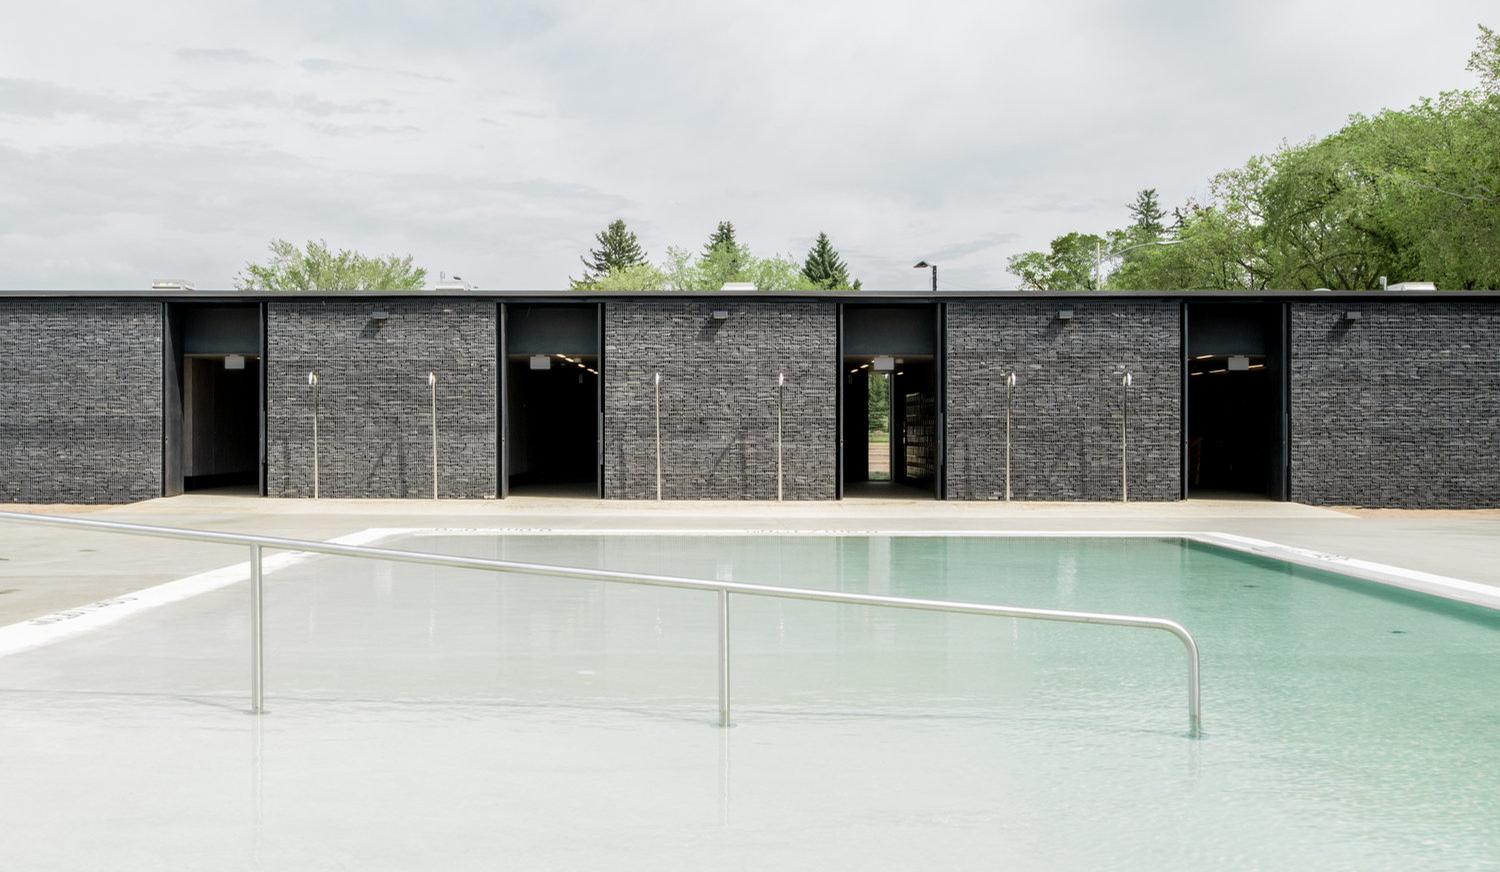 Borden Park has a main swimming pool for adults and this one for kids / gh3 architecture